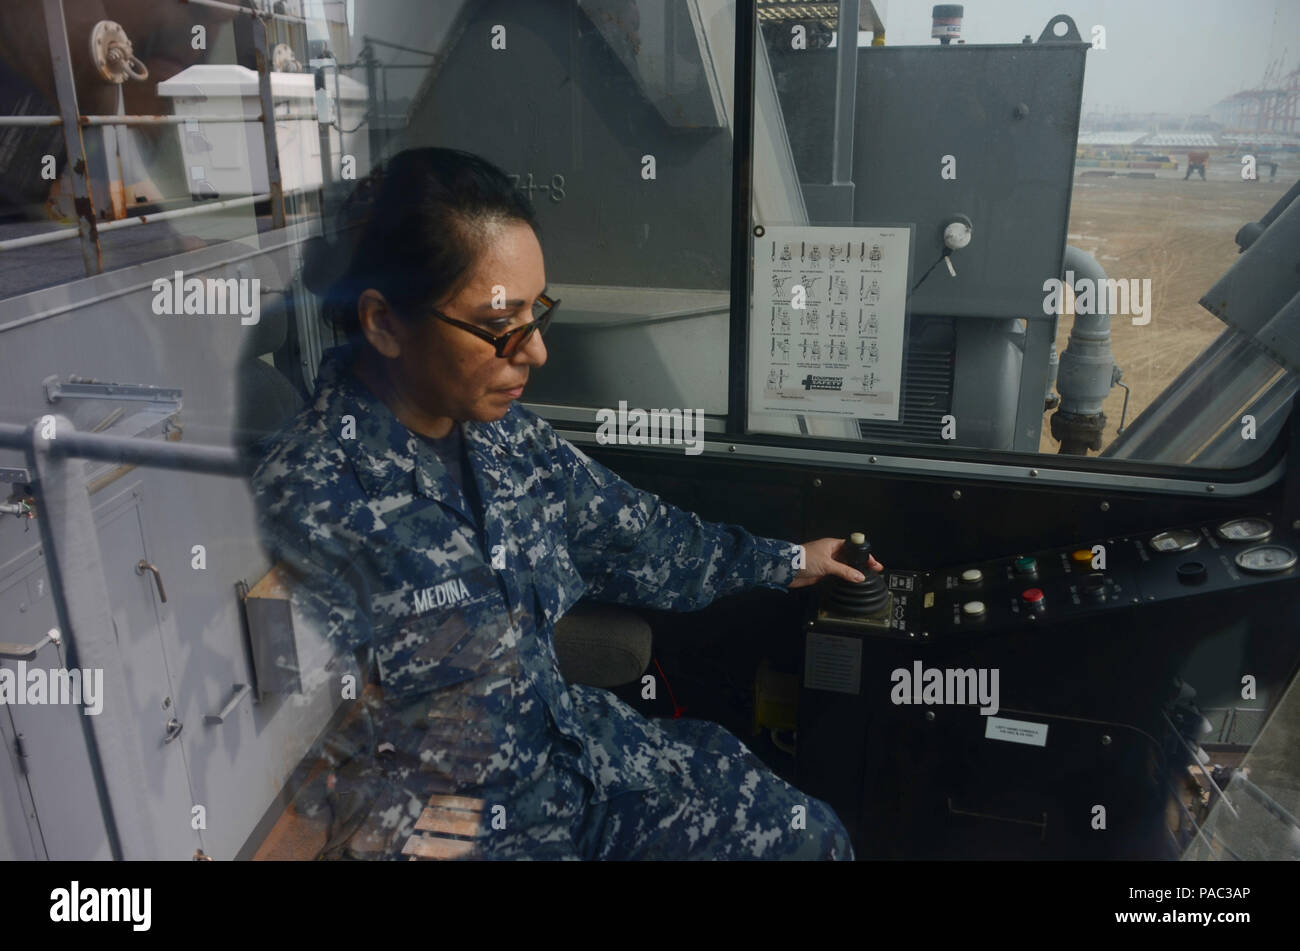 160307-N-WJ640-042 GWANGYANG, South Korea—Logistics Specialist 3rd Class Elena Medina, reserve-component Sailor from New York City, operates a shipboard crane for training on board dry cargo/ammunition ship USNS Sacagawea (T-AKE 2), March 7. The Sacagawea was one of three MPF ships that offloaded her cargo in support of Exercise Ssang Yong 16 (SY16), under the Exercise Freedom Banner 2016 (FB16) directive. Freedom Banner 2016, a Navy and Marine Corps deployment and offload/backload exercise that is nestled within SY16, brought multiple commands together to offload Maritime Prepositioning Force Stock Photo